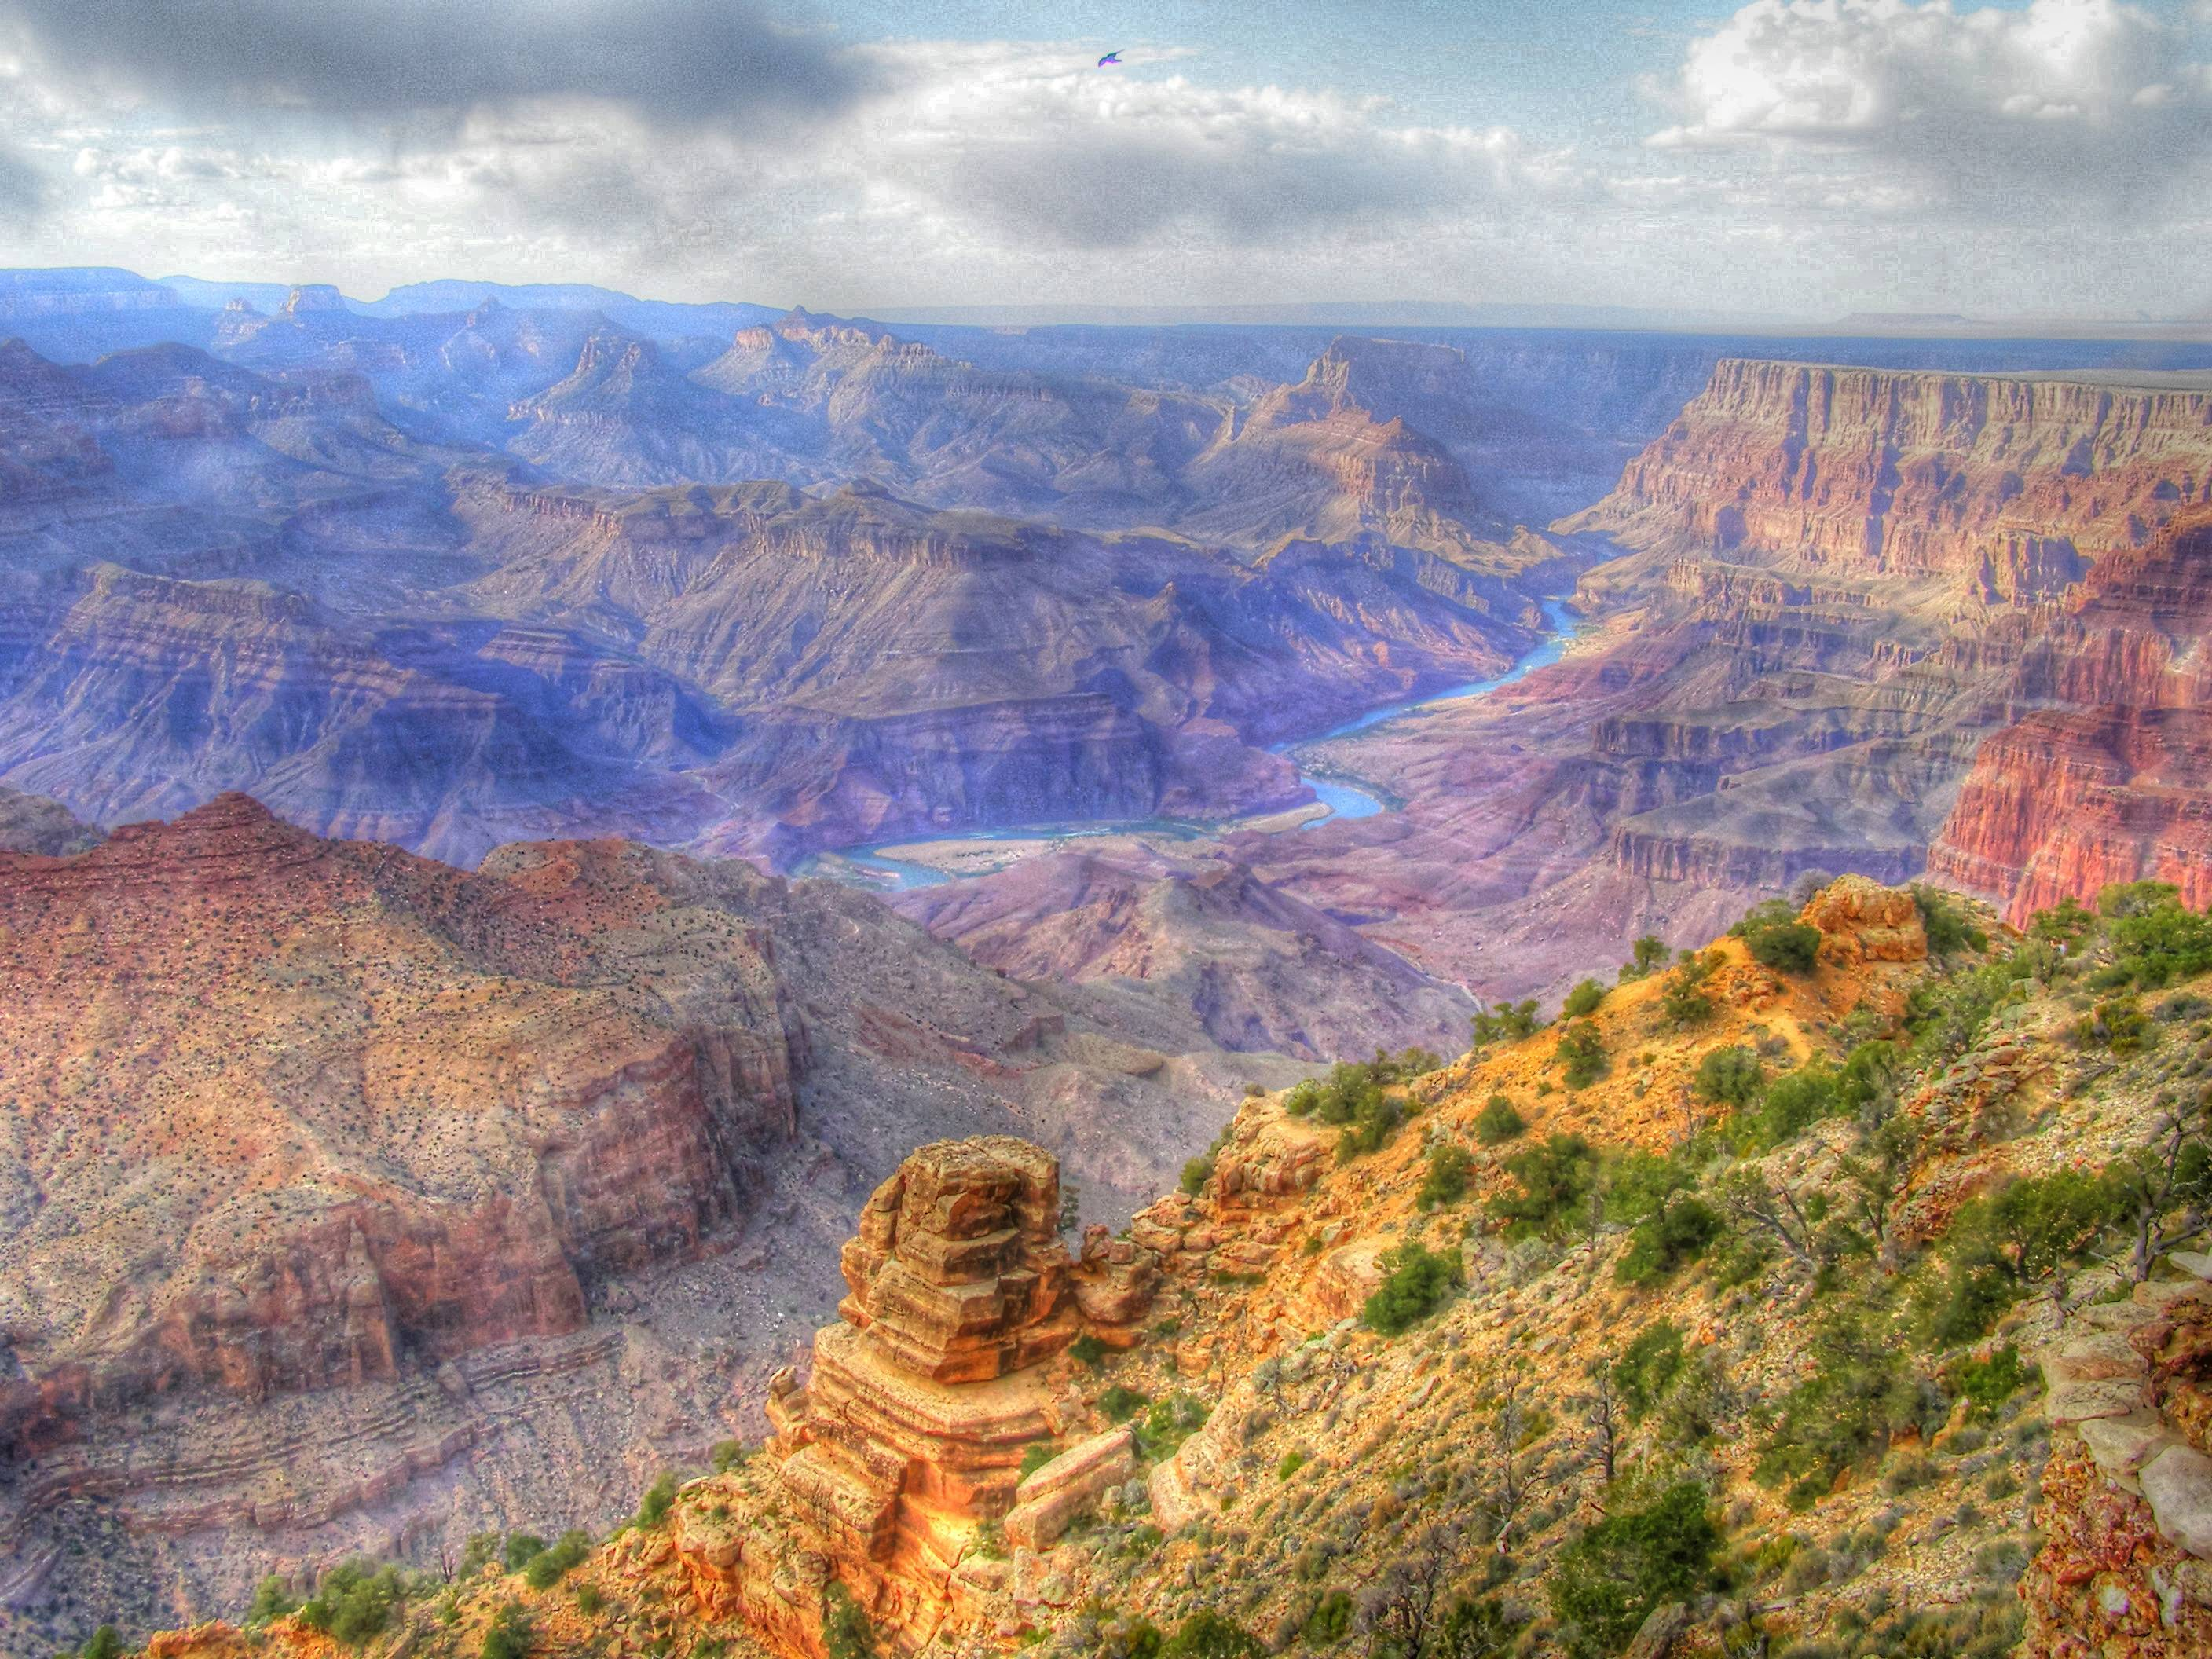 When my wife and I were on vacation in Arizona,  we were overwhelmed by the awesome beauty and  size of the Grand Canyon. I enhanced the tonal values of the image with a program to bring out the dynamic range.